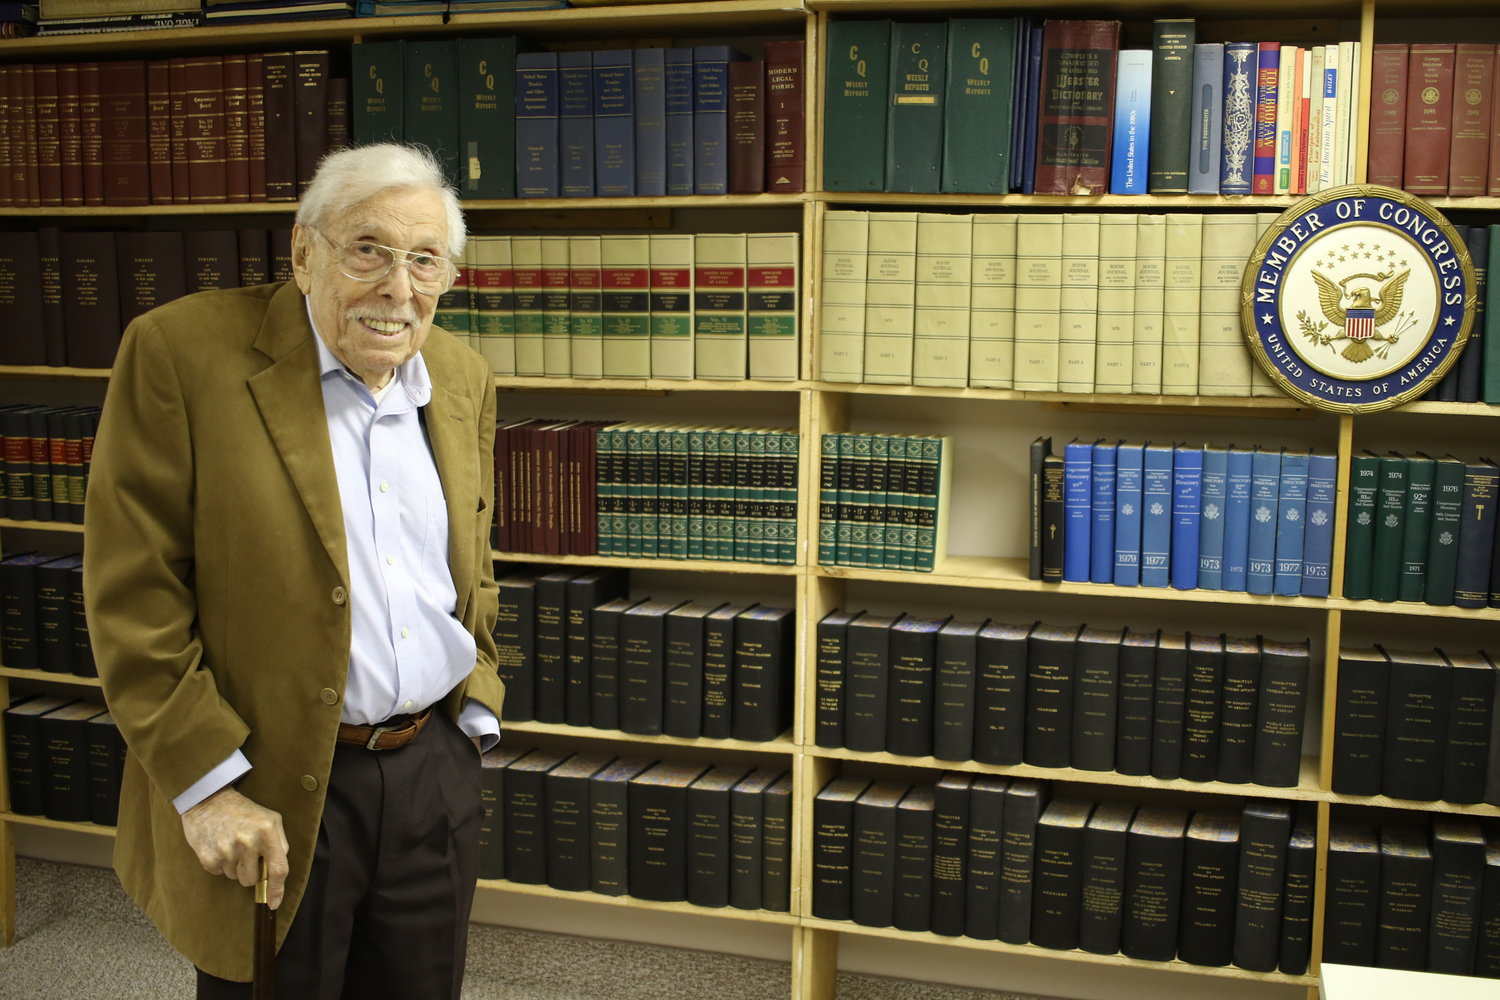 Lester Wolff has an extensive library in his East Norwich home that includes several books he wrote. He said he was honored that President Trump signed a law renaming the North Shore refuge the Congressman Lester Wolff Oyster Bay National Wildlife Refuge.